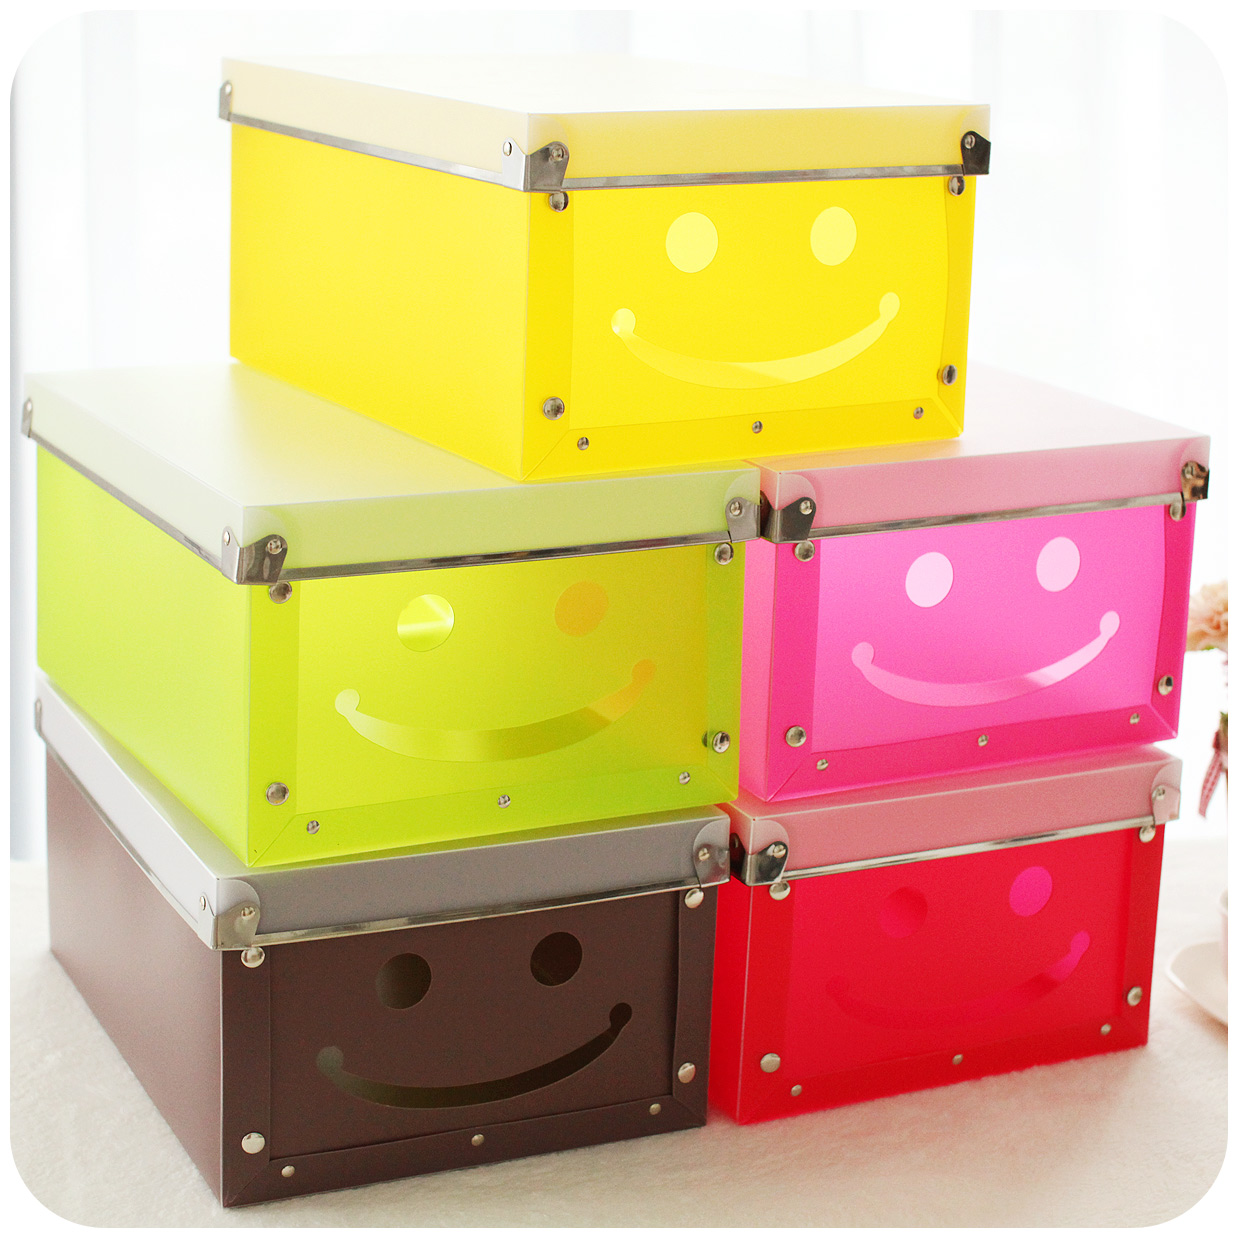 smiley plastic diy storage box finishing large folding. Black Bedroom Furniture Sets. Home Design Ideas